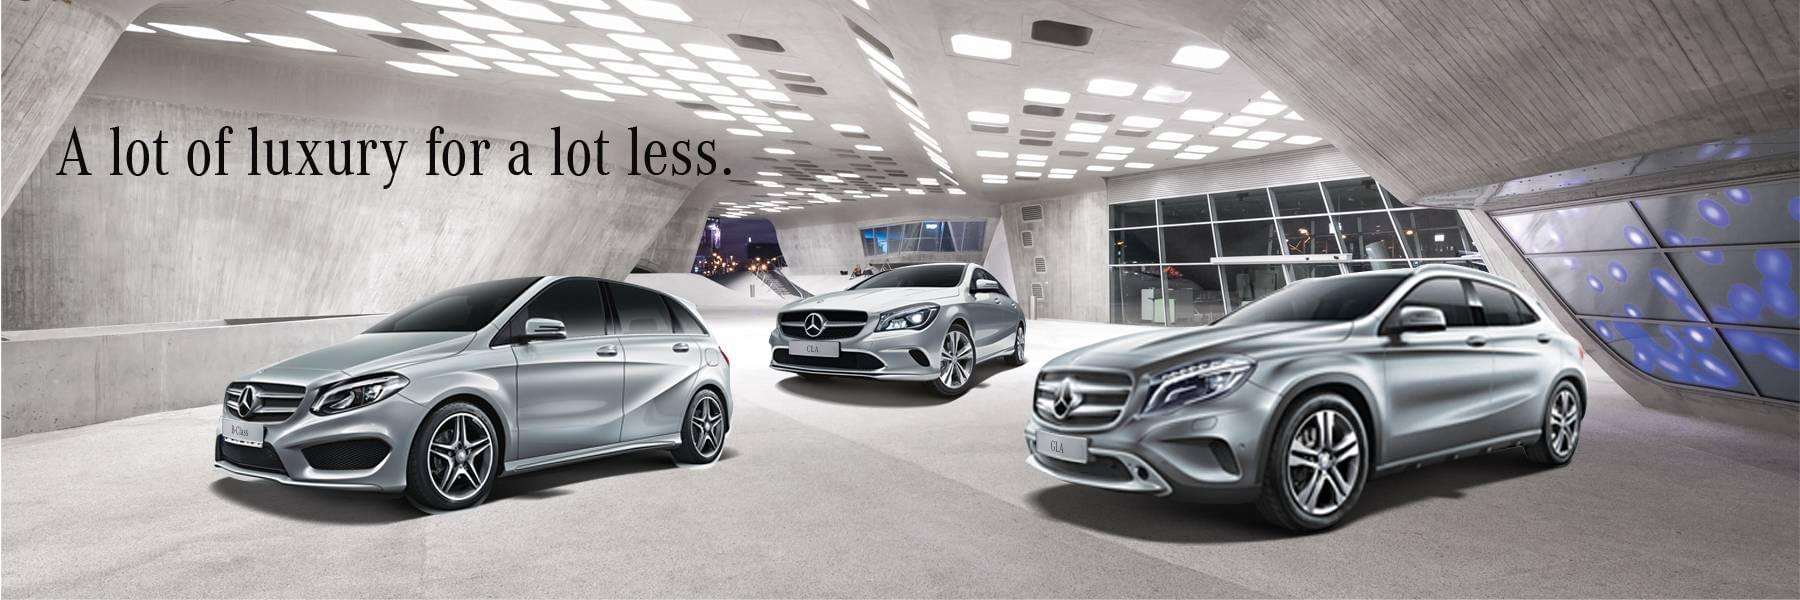 new mercedes benz car specials greater vancouver area